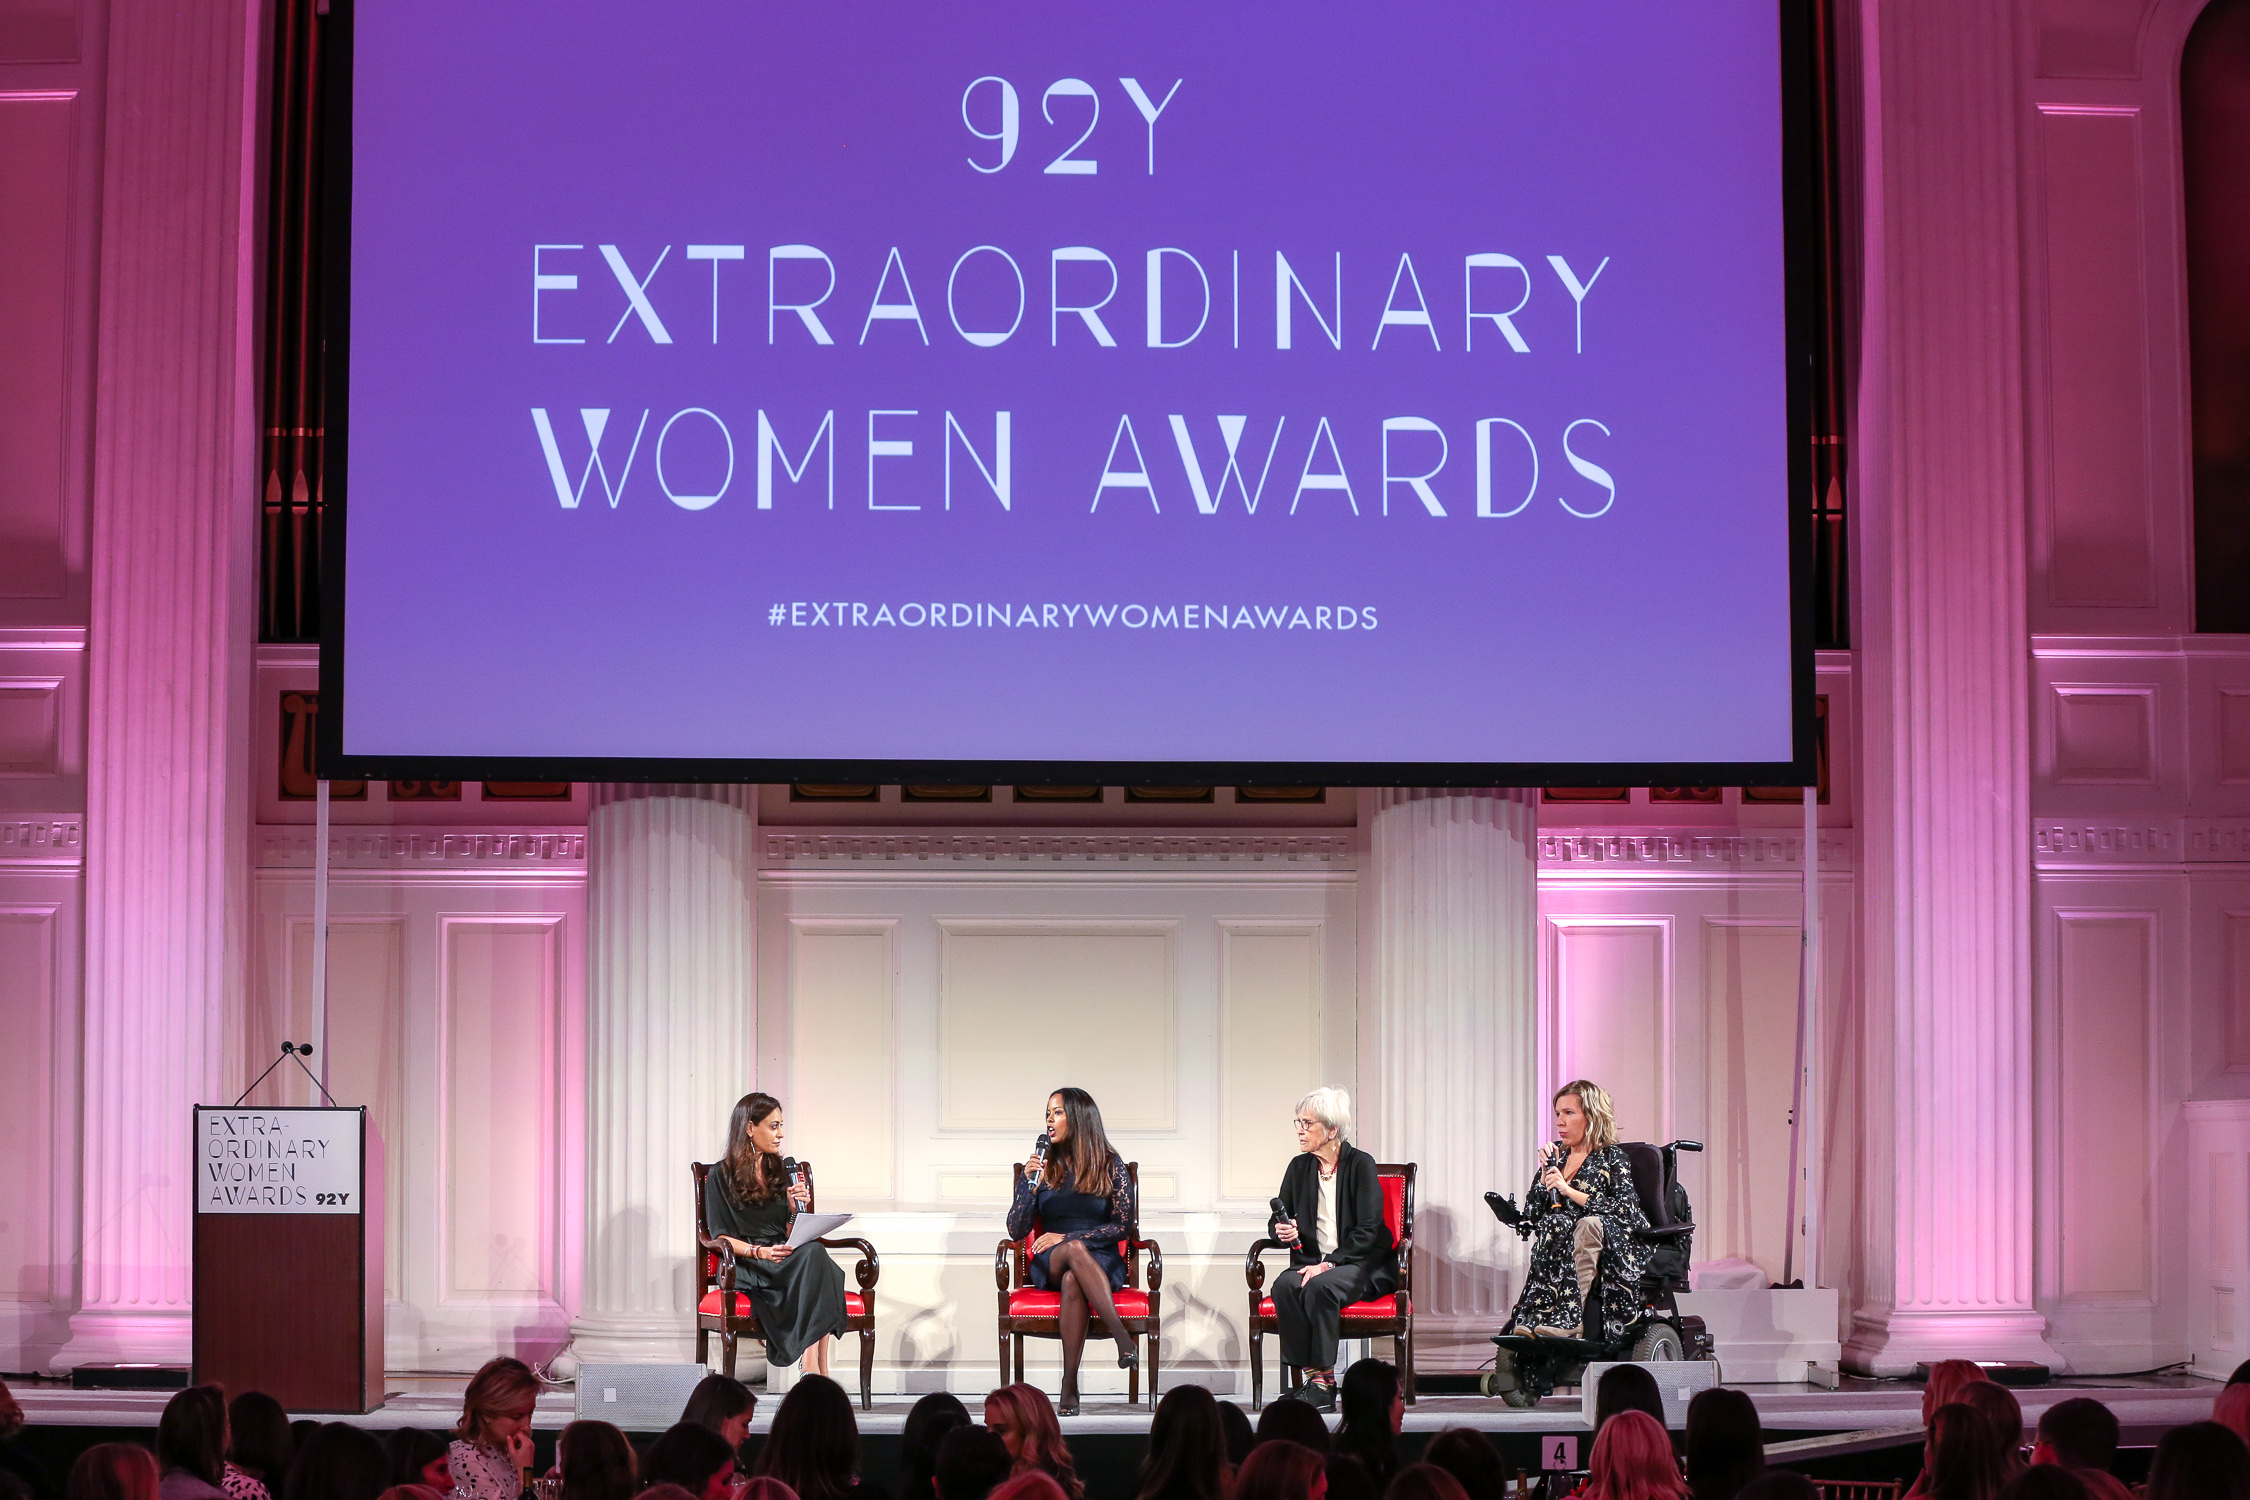 On stage at  92Y 's 2017 Extraordinary Women Awards on Park Avenue